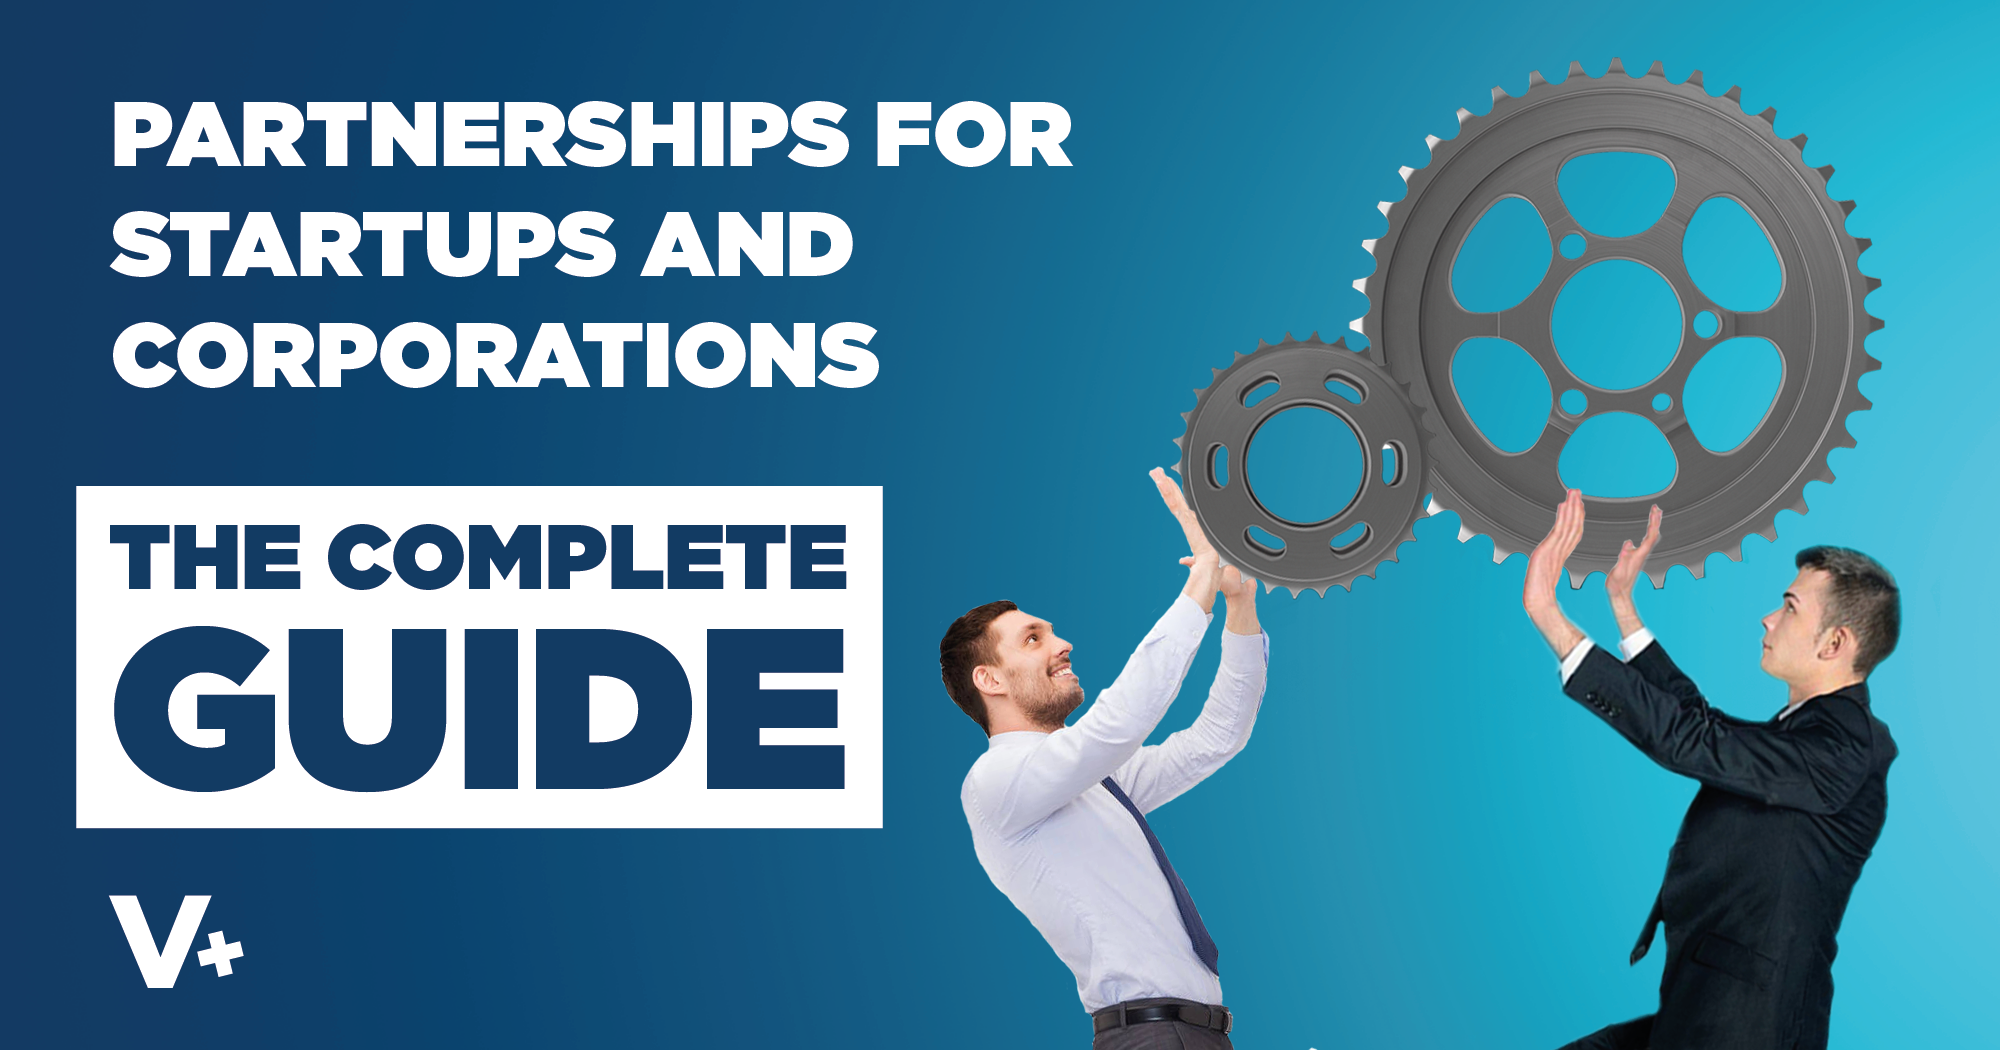 The Complete Guide to Partnerships for Startups & Corporations